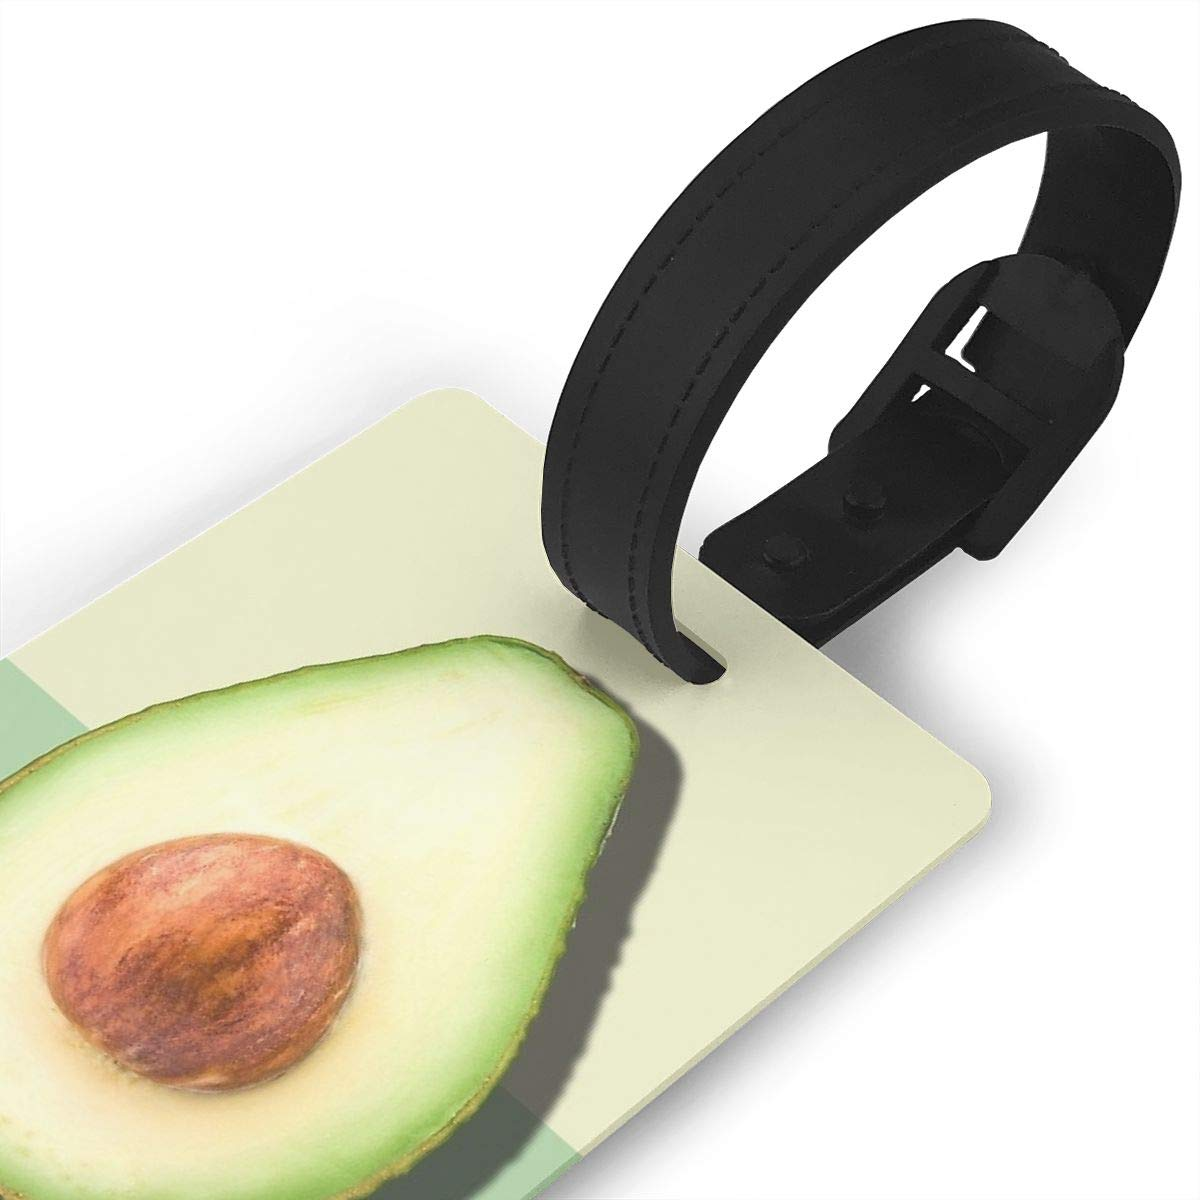 Avocado Half Slice Tropical Fruit Luggage Tags Suitcase Labels Bag Travel Accessories Set of 2